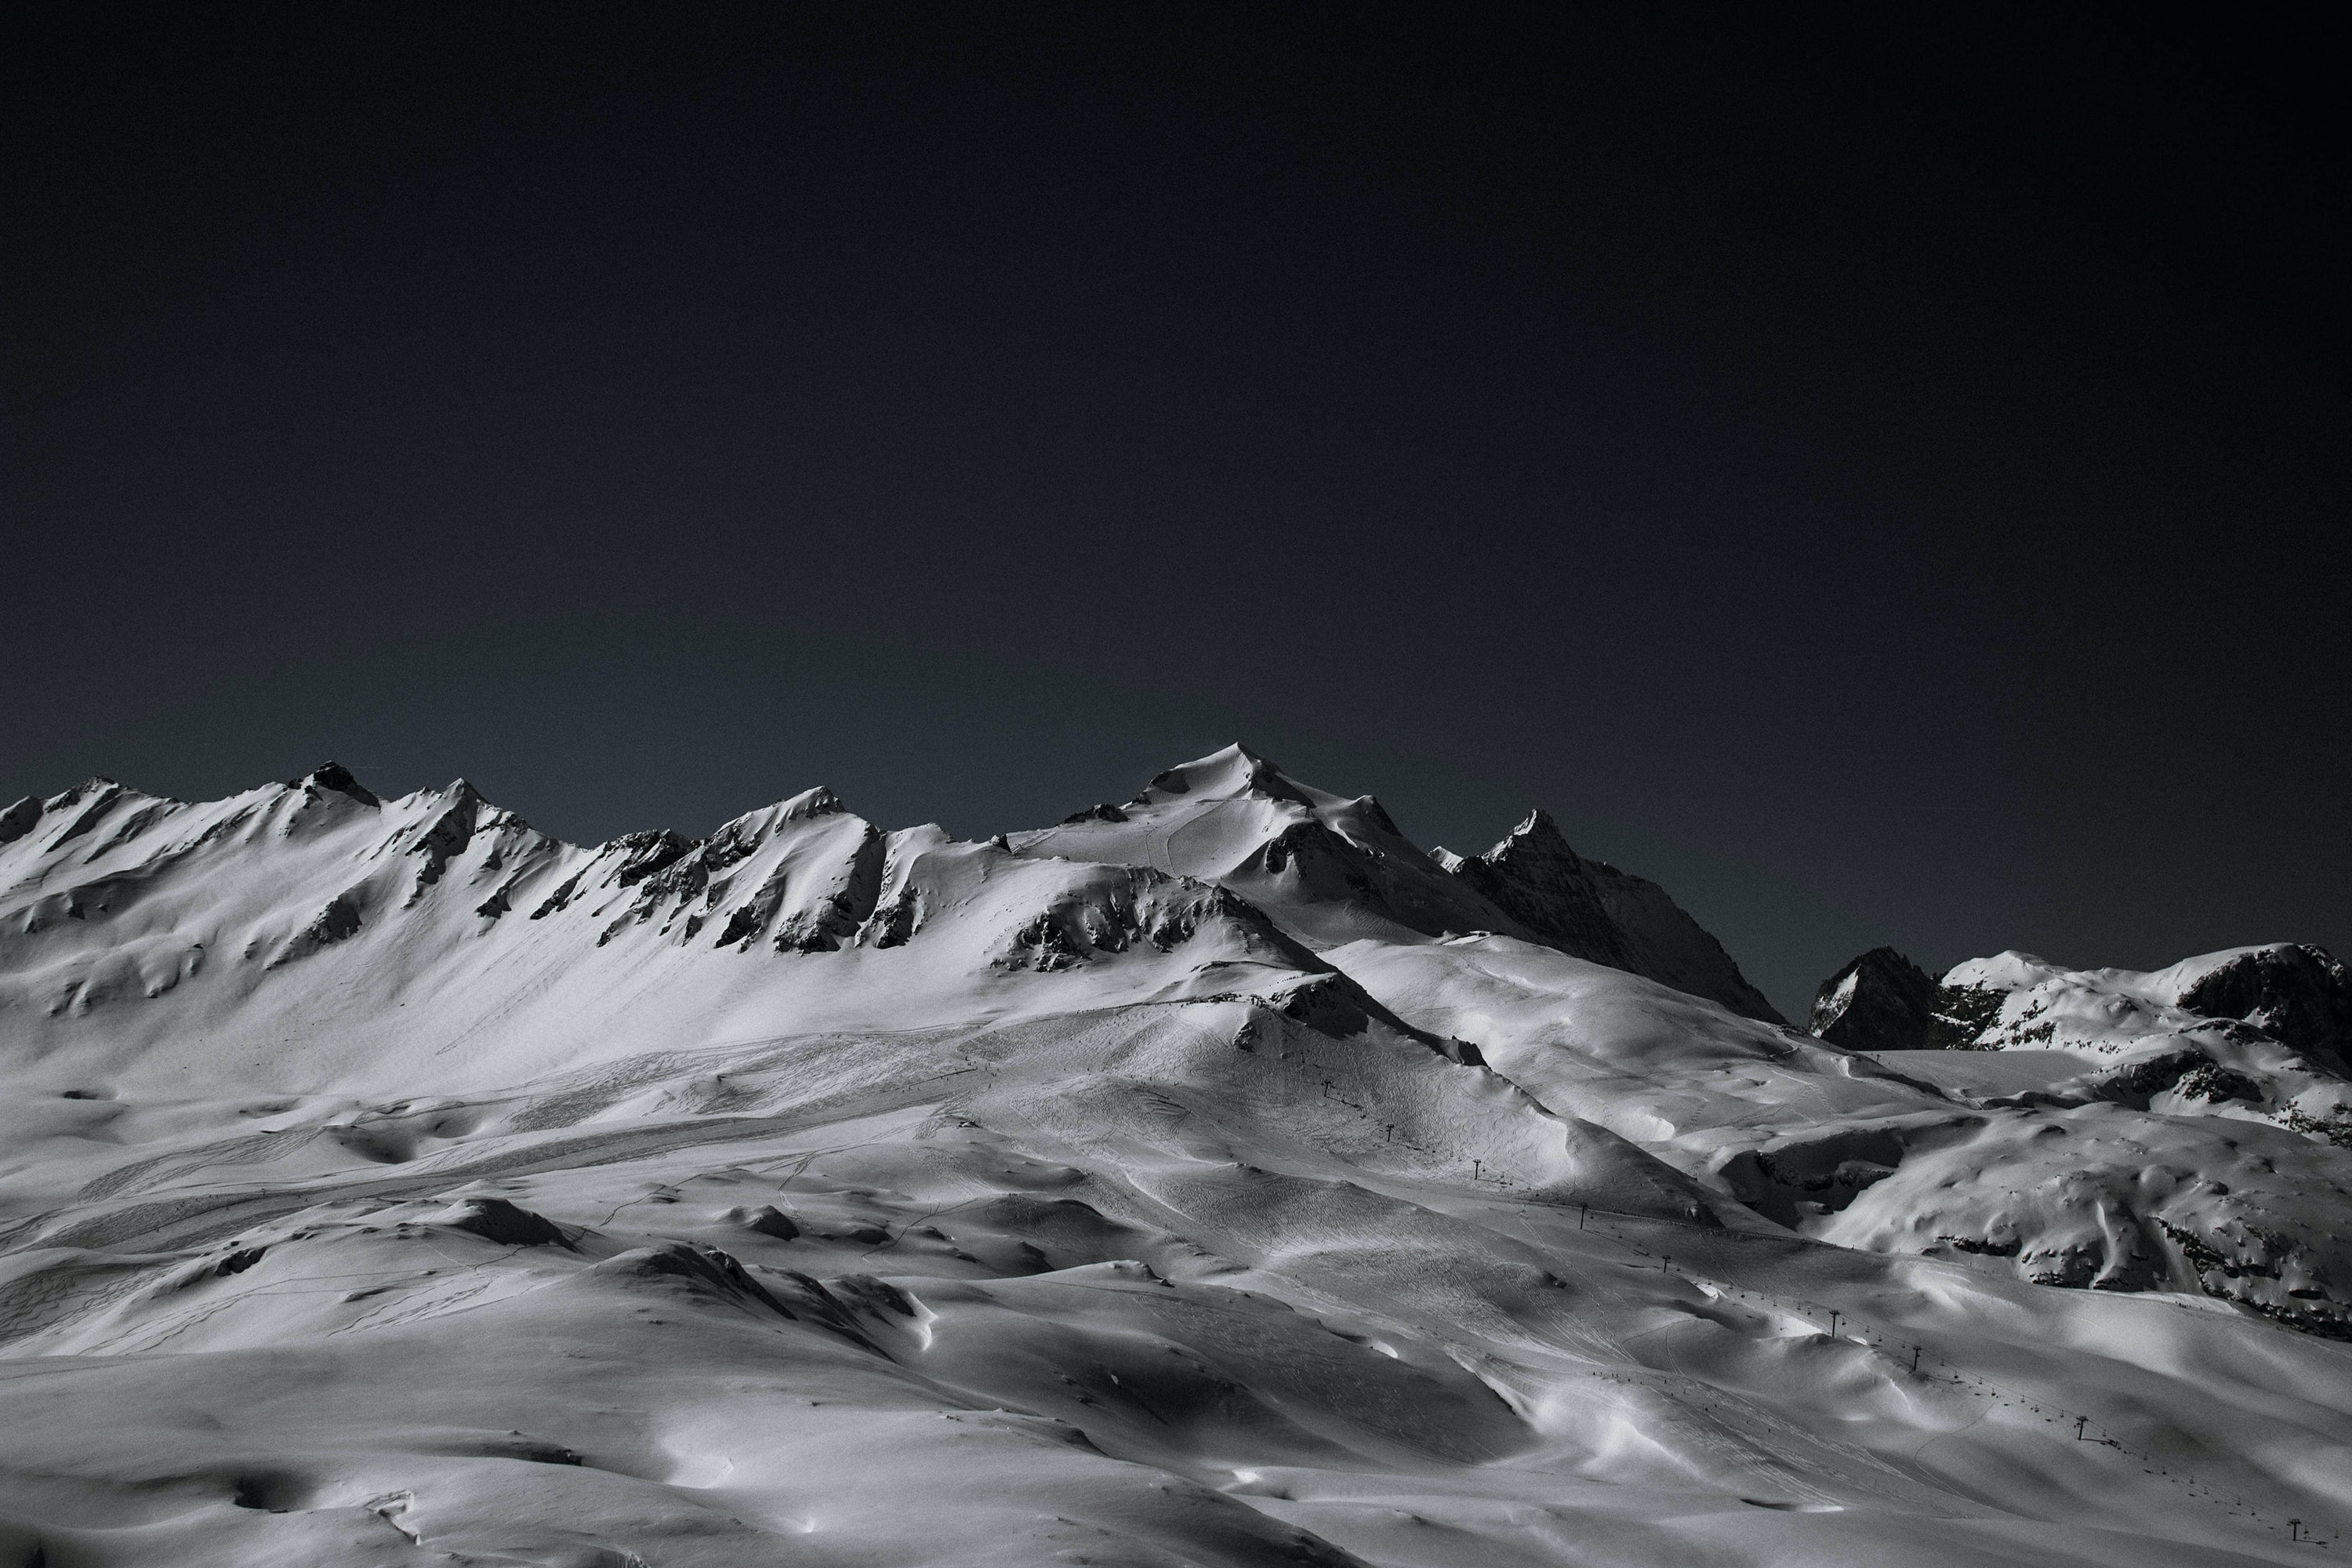 A dark look at a snow covered mountain.